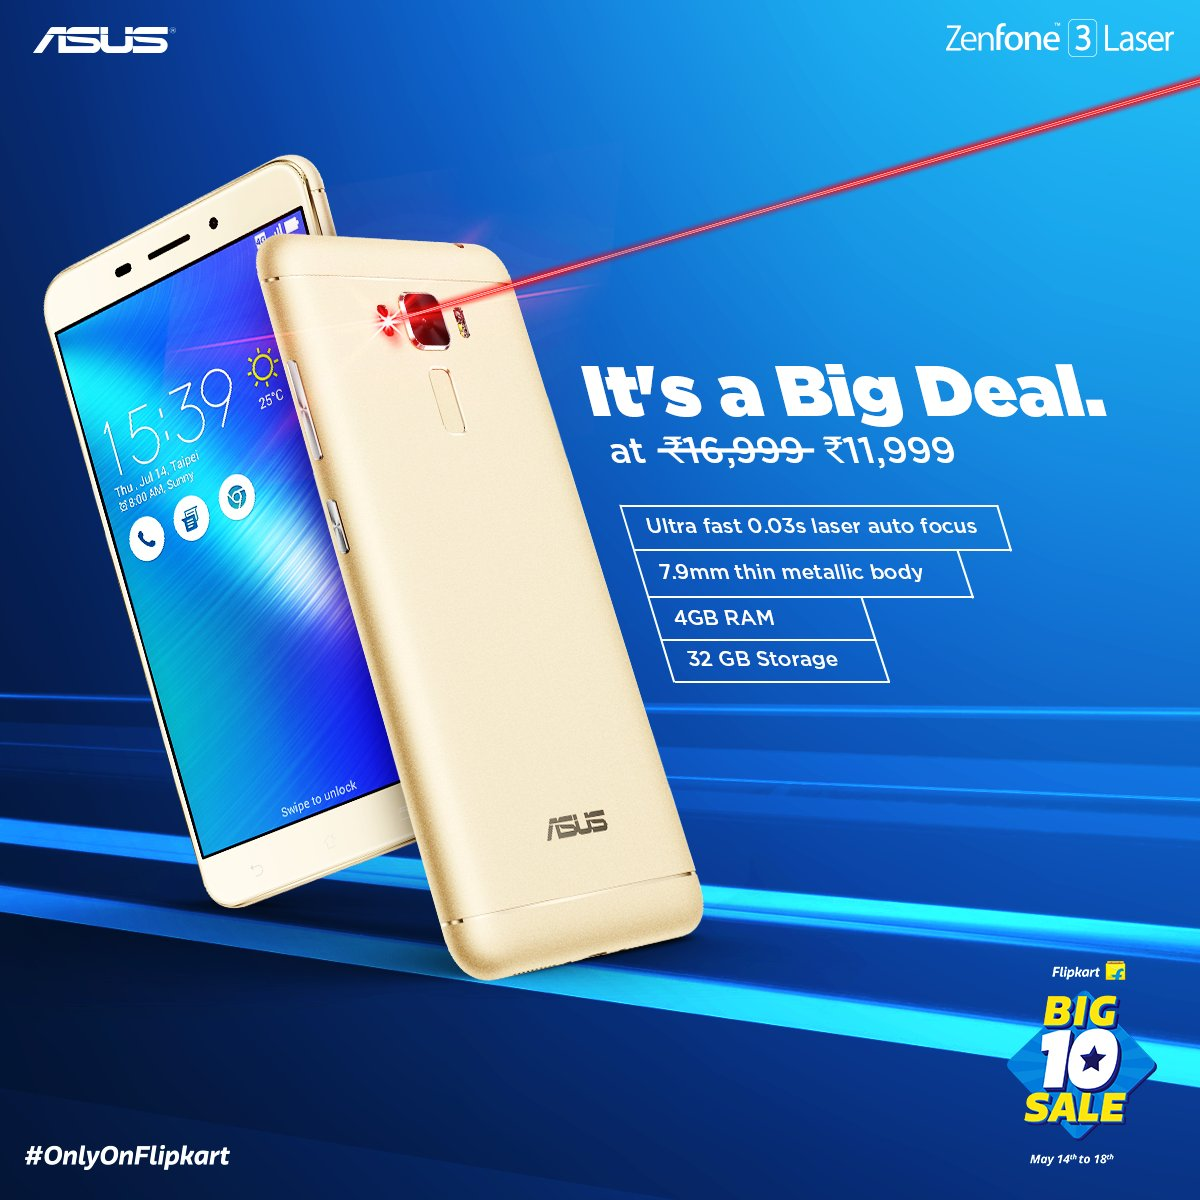 d87c2aea9 Asus Zenfone 3 Laser 4GB 32GB Only Rs 11999 - 40% OFF - Freebie ...